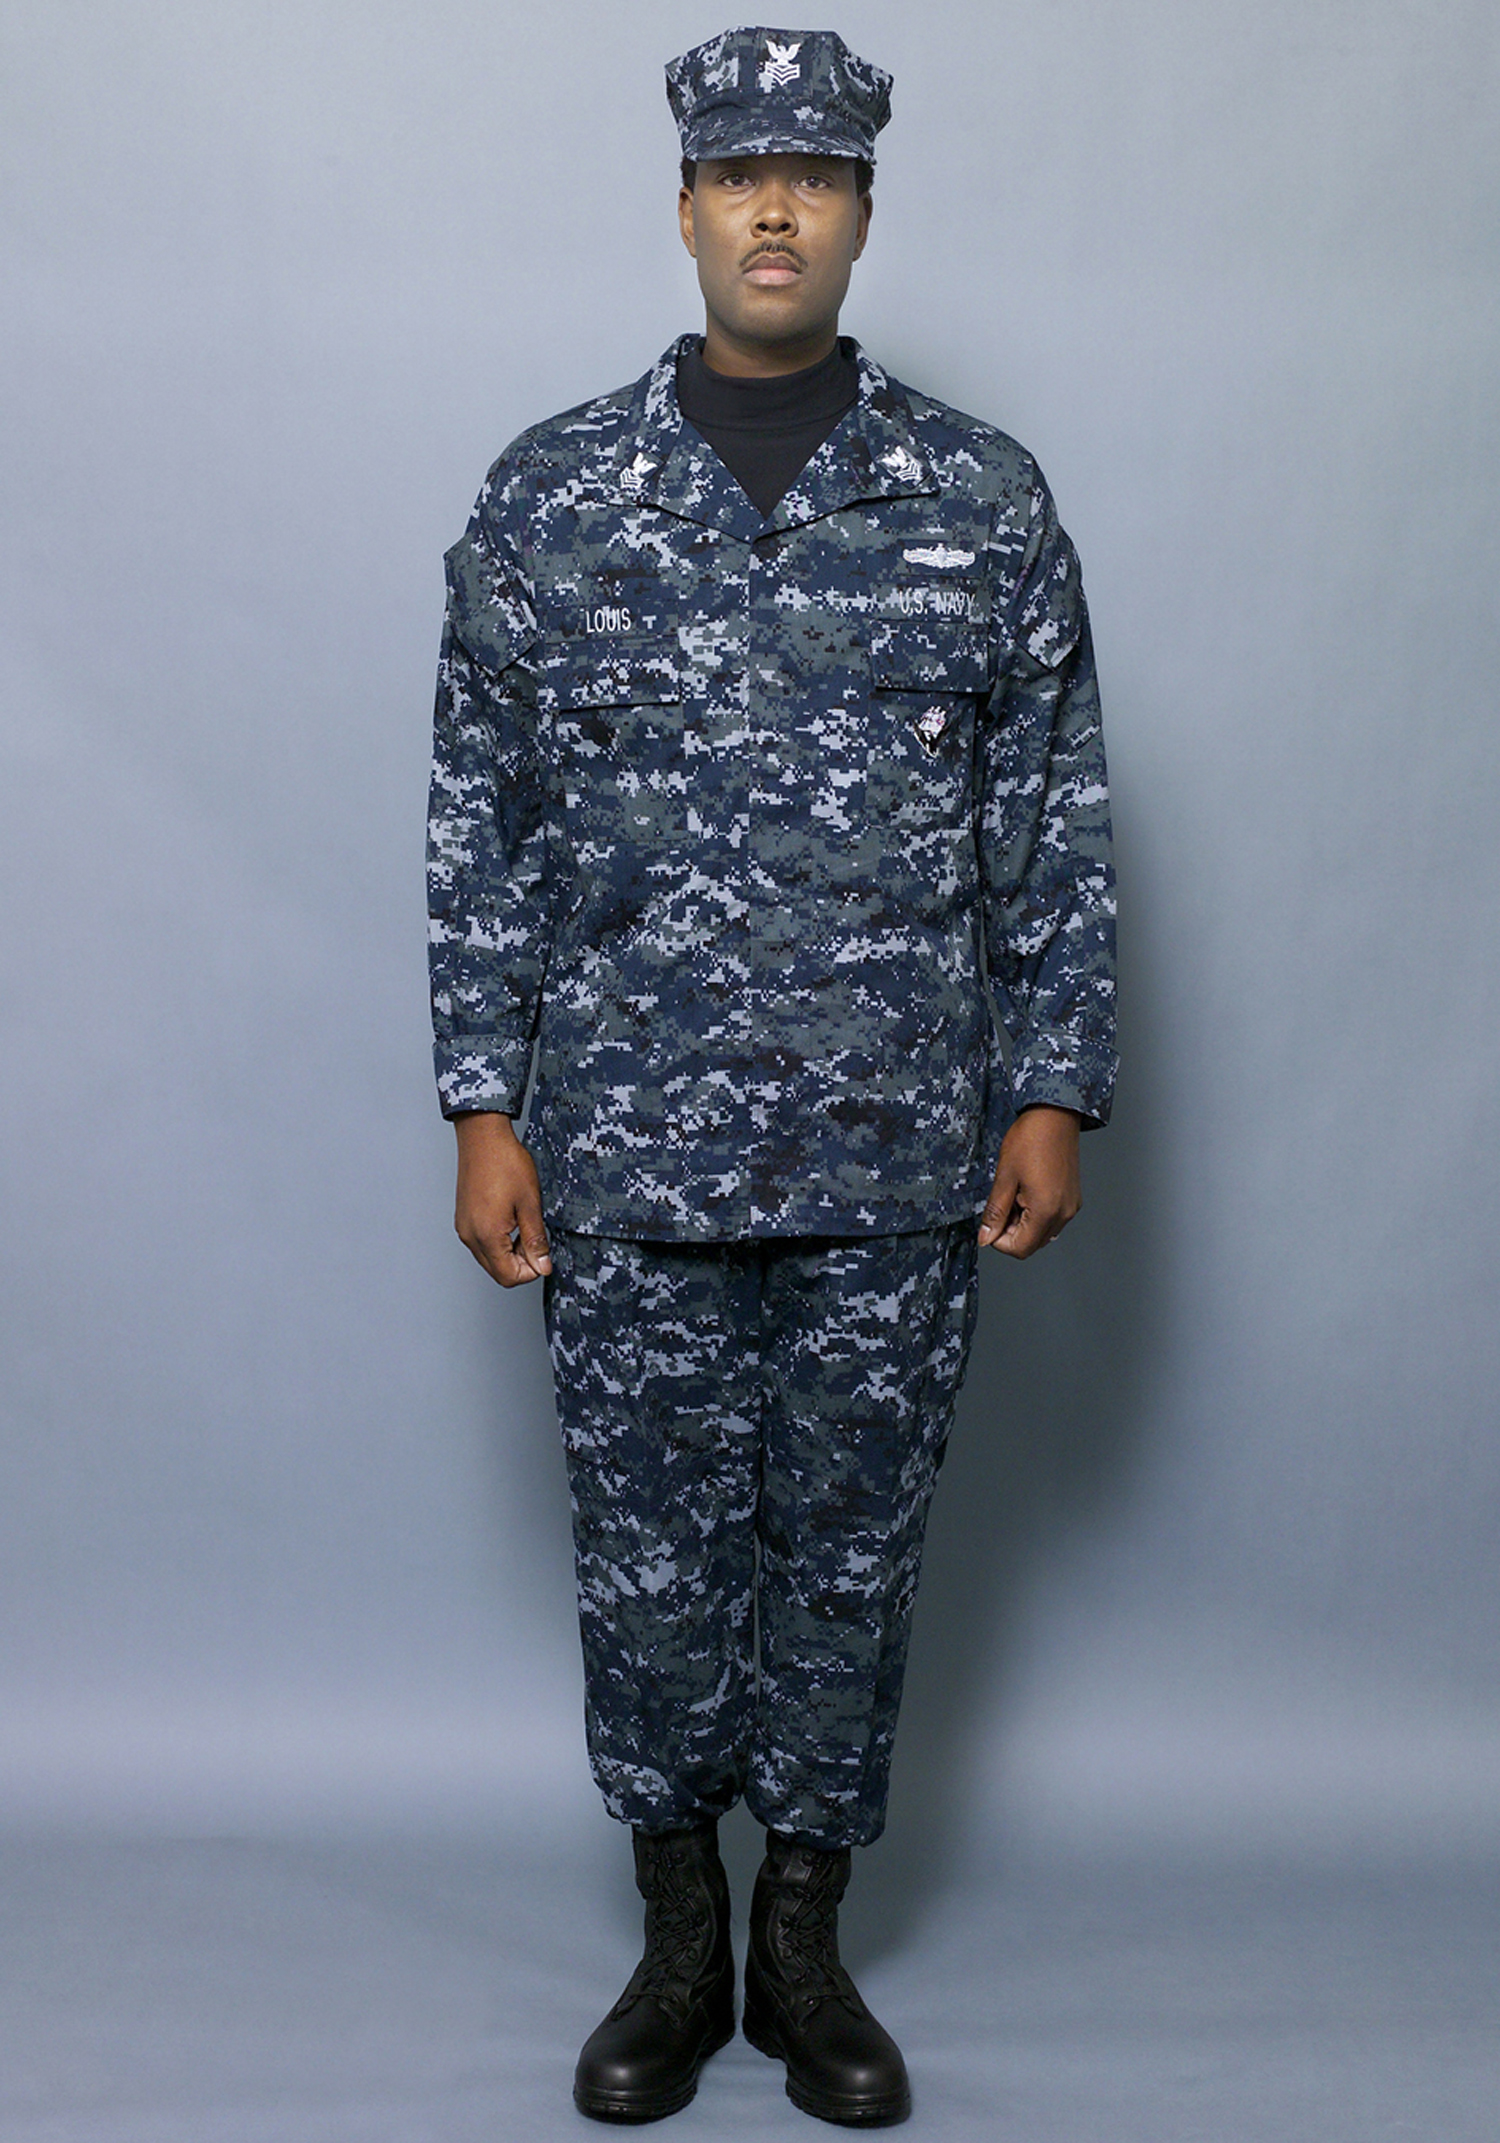 0000X-006 The Navy introduced a set of concept working uniforms ...